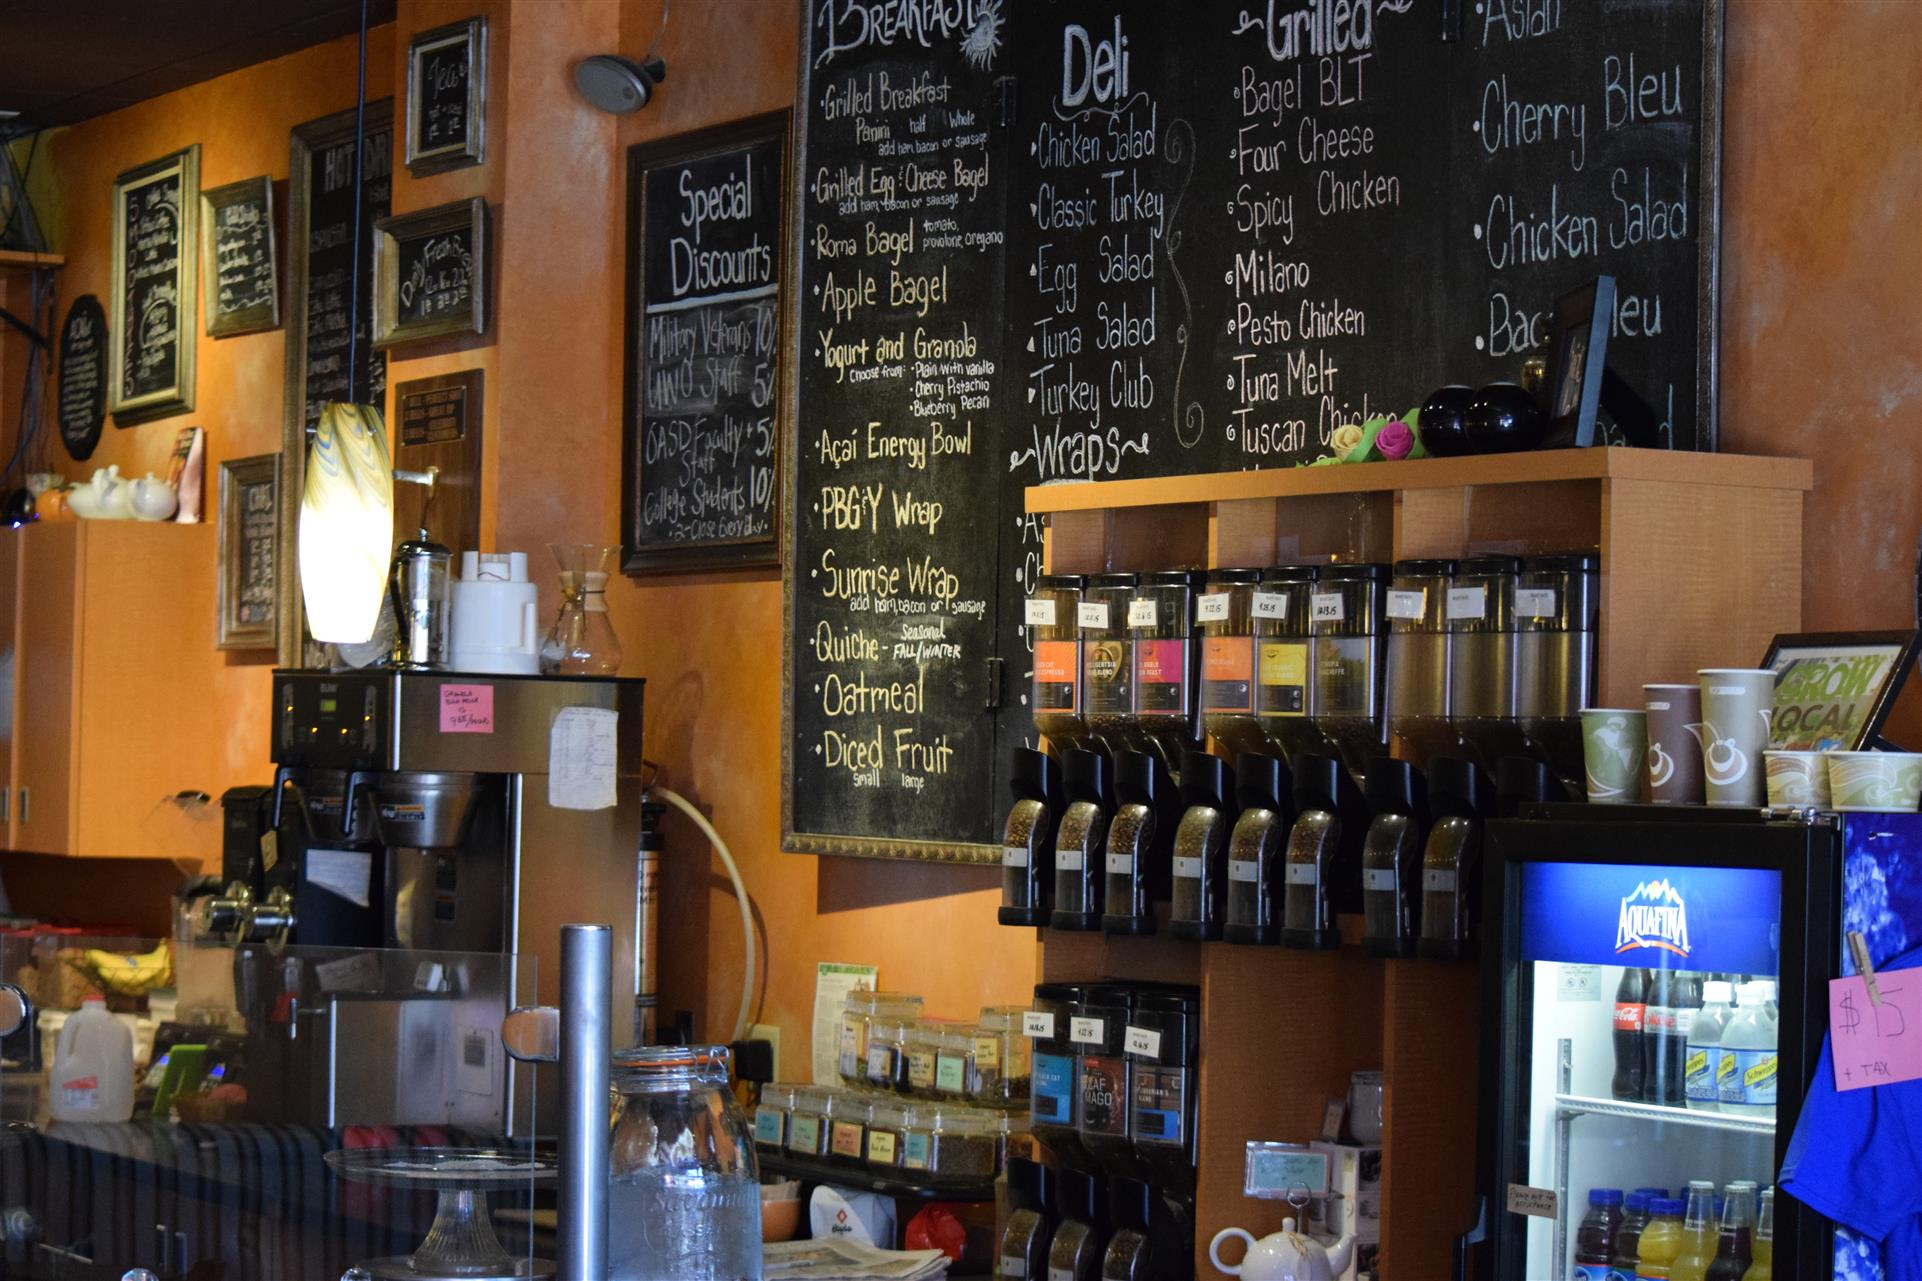 view of behind the counter of the chalkboard menu and drink supplies